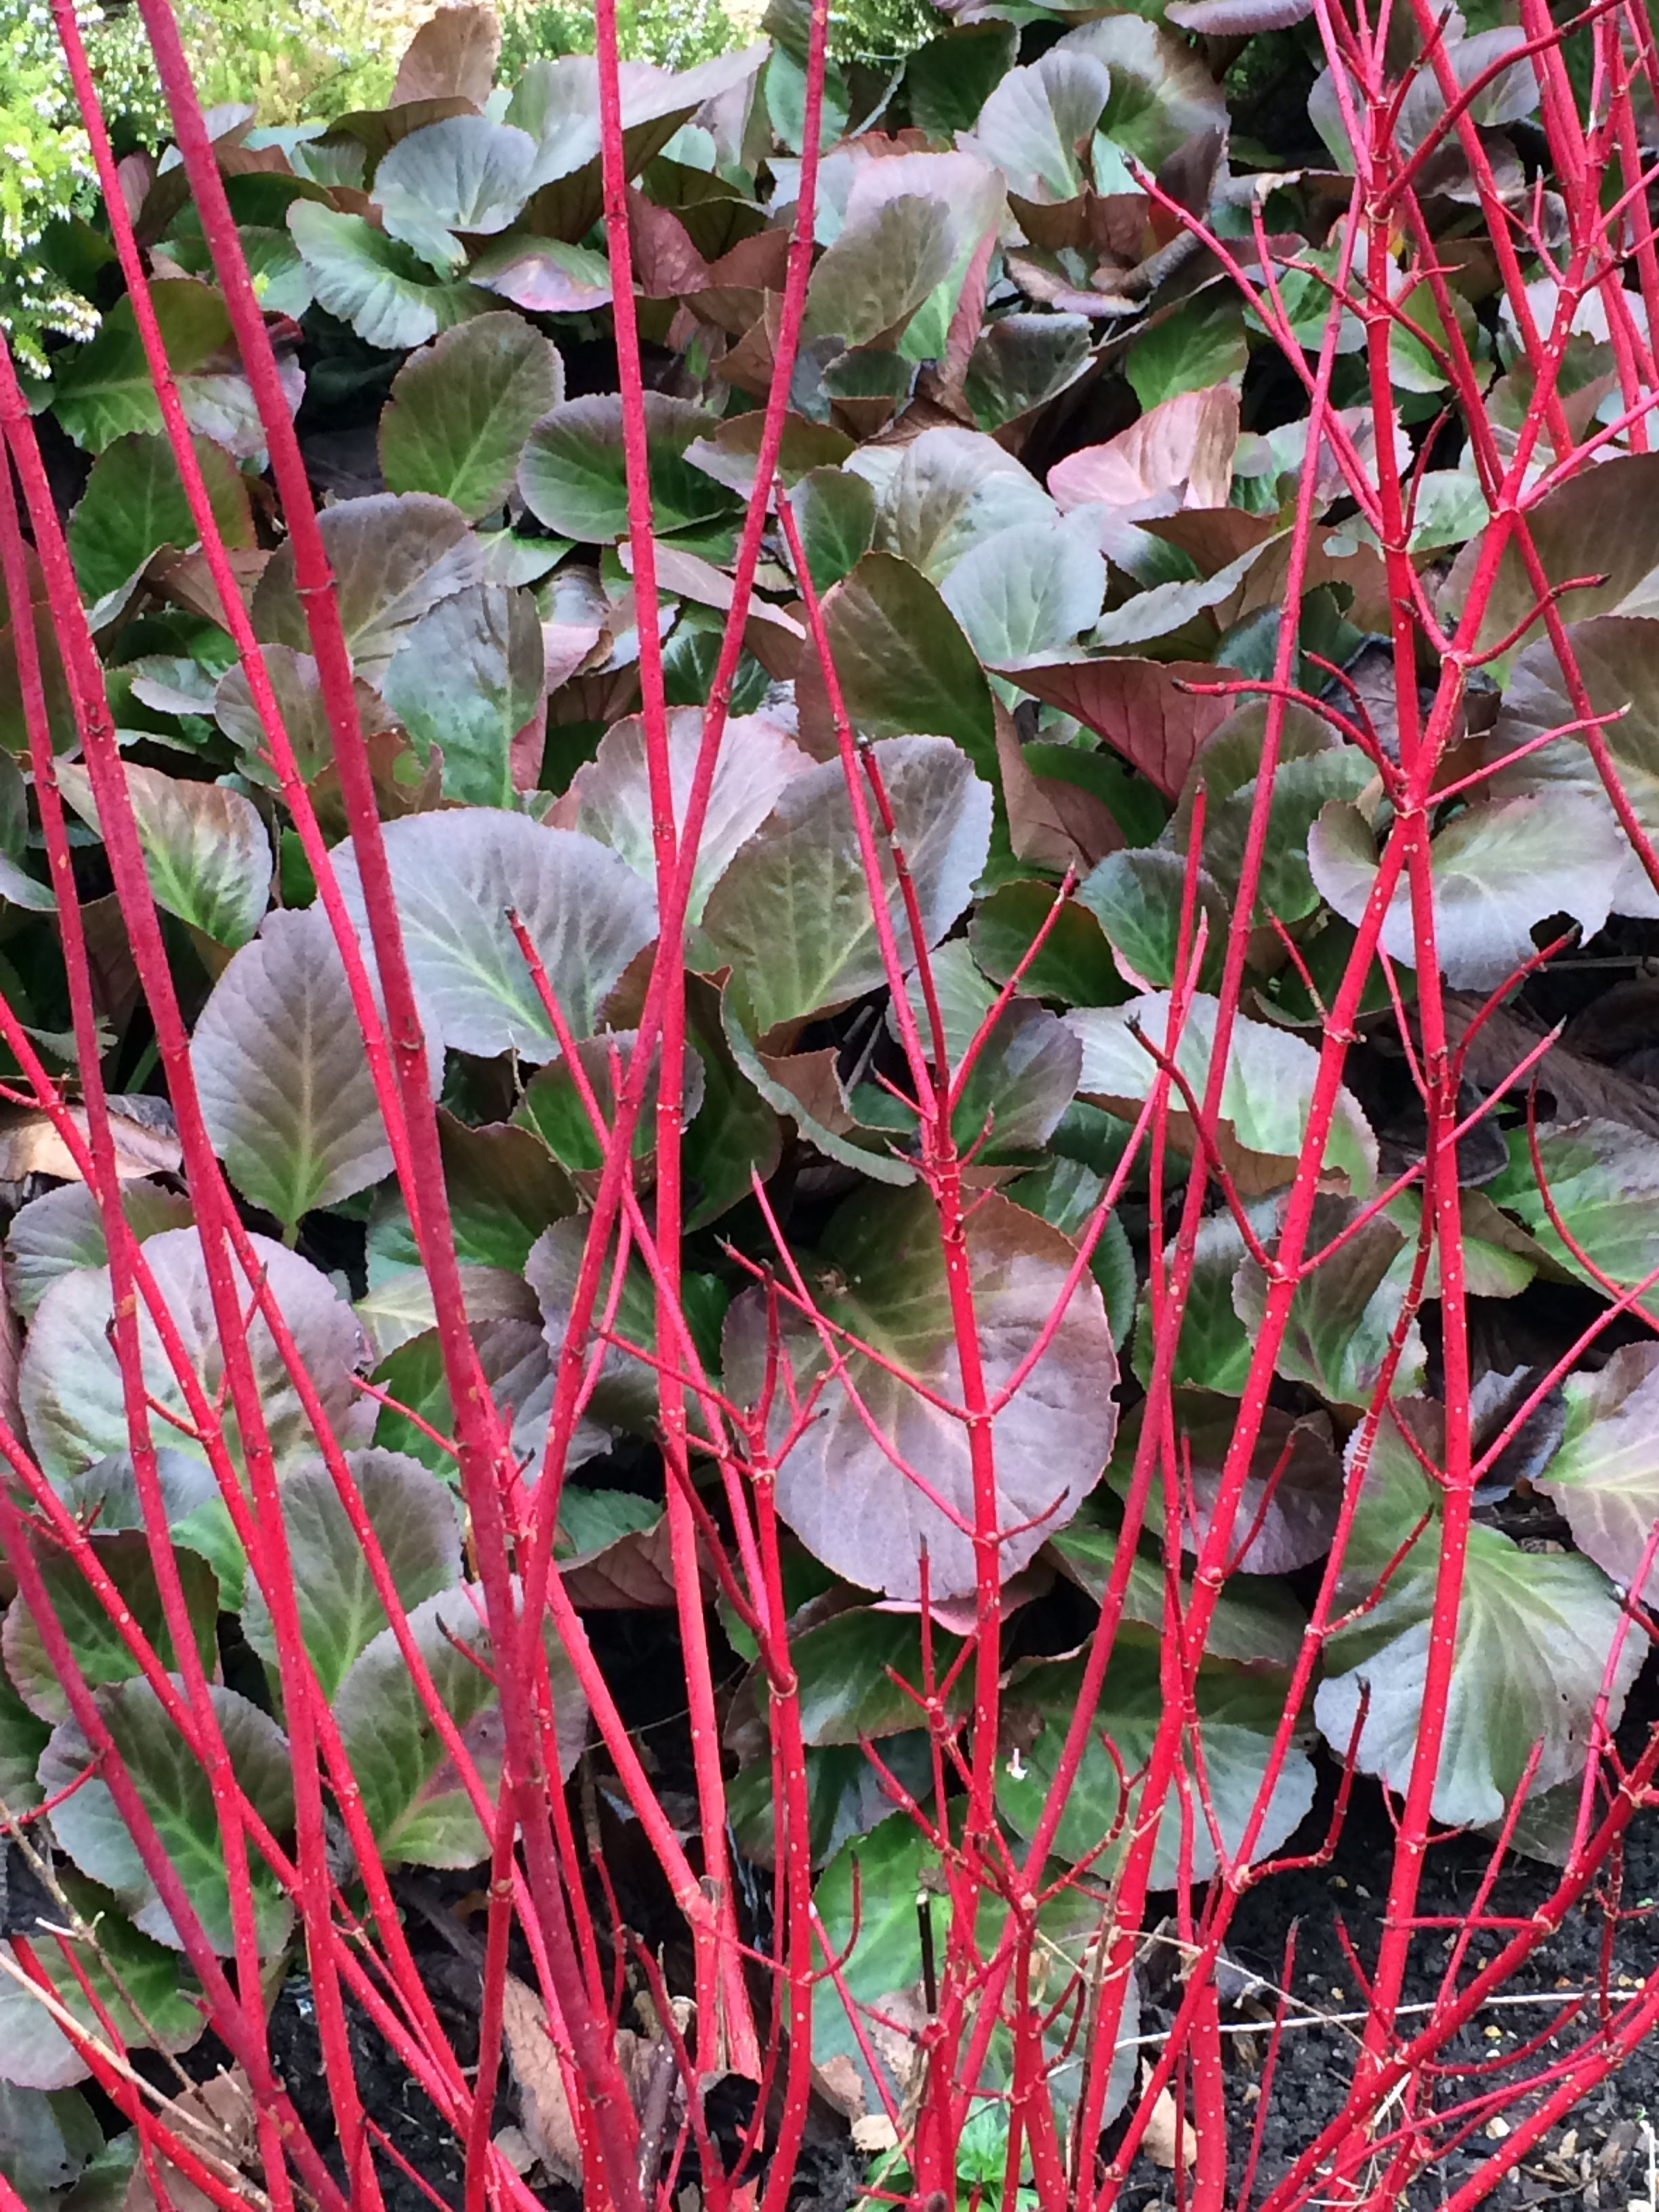 Remarkable Cornus Alba Sibirica  Bergenia Bressingham Ruby At Cambridge  With Remarkable Cornus Alba Sibirica  Bergenia Bressingham Ruby At Cambridge Botanic Garden With Comely Garden Waste Bin Also Gardening Raised Beds In Addition Gardening Landscaping And Making Fairy Garden Furniture As Well As No Tangle Garden Hose Additionally Cheap Large Garden Sheds From Pinterestcom With   Remarkable Cornus Alba Sibirica  Bergenia Bressingham Ruby At Cambridge  With Comely Cornus Alba Sibirica  Bergenia Bressingham Ruby At Cambridge Botanic Garden And Remarkable Garden Waste Bin Also Gardening Raised Beds In Addition Gardening Landscaping From Pinterestcom